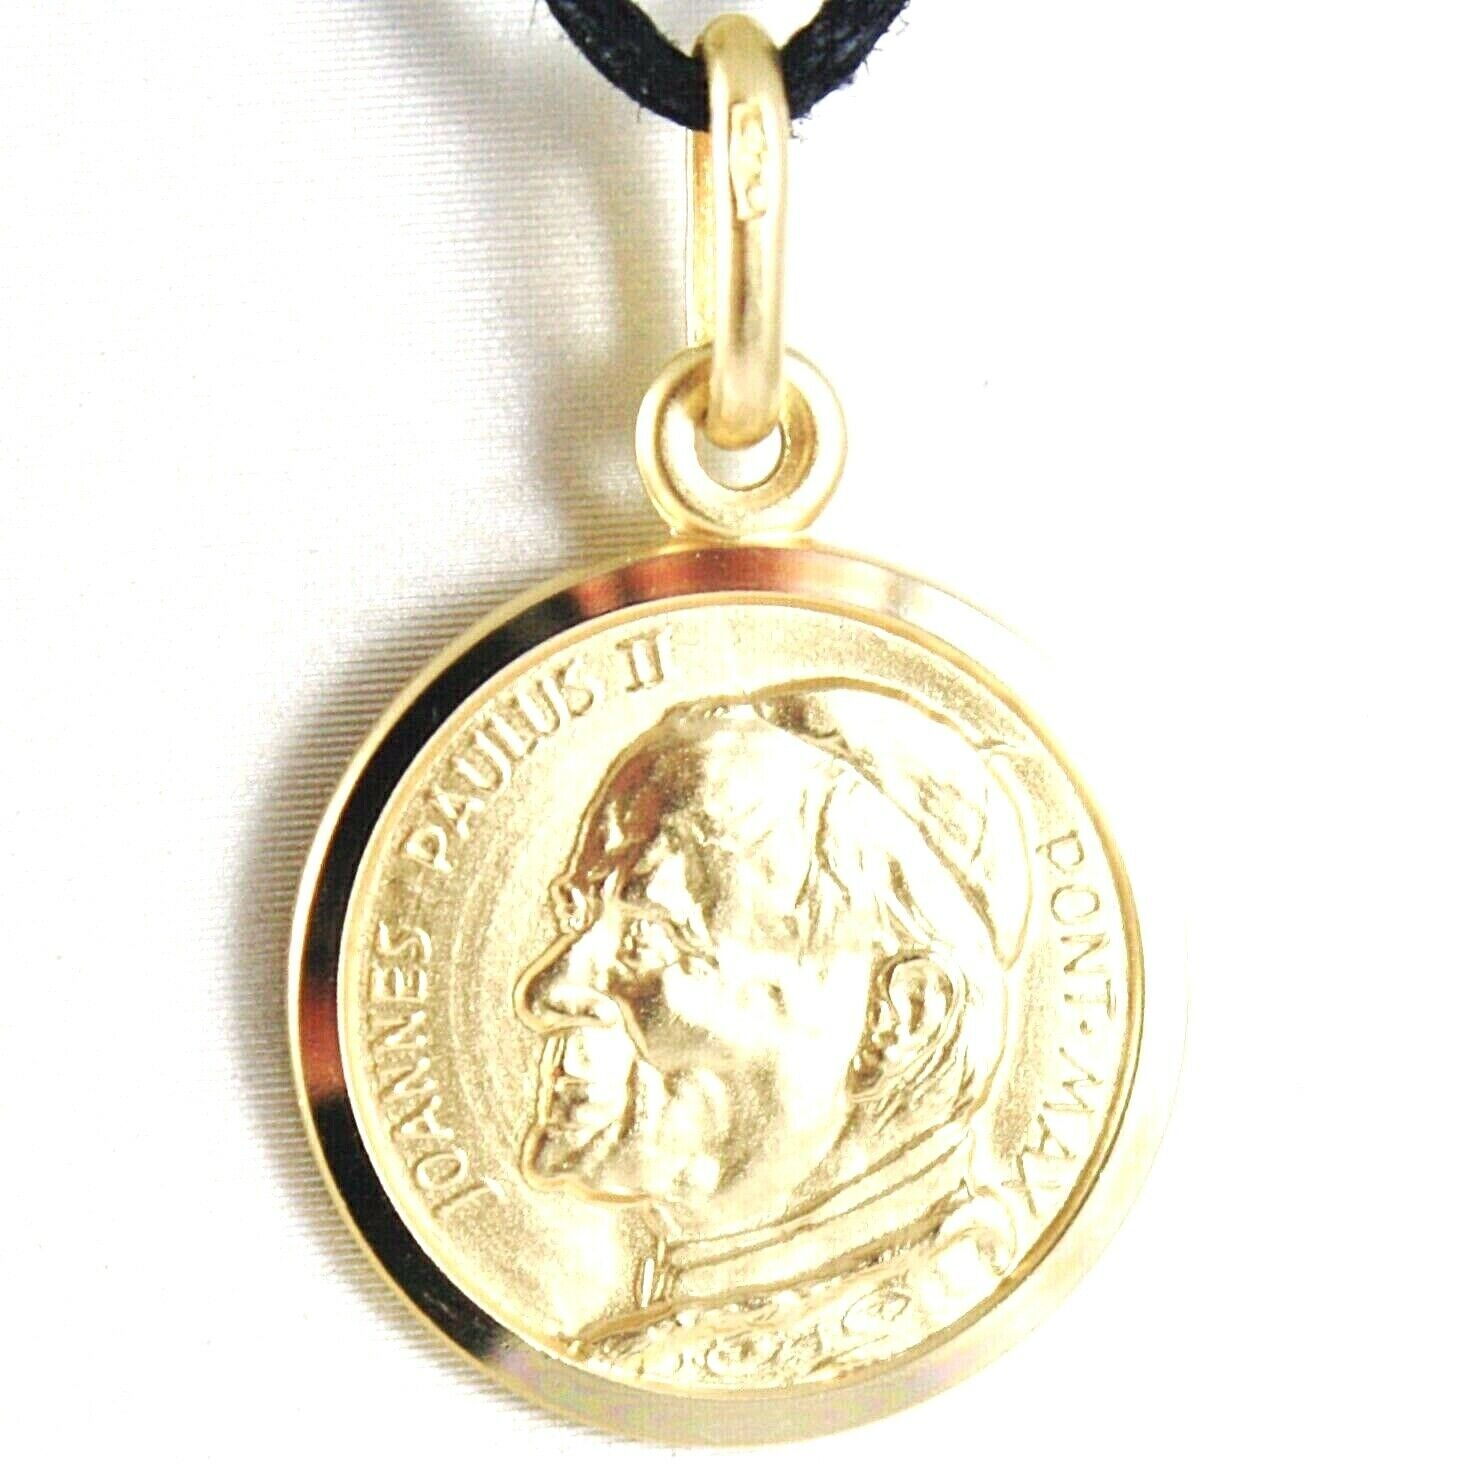 SOLID 18K YELLOW GOLD SAINT POPE JOHN PAUL II, DIAMET. 13 MM MEDAL MADE IN ITALY